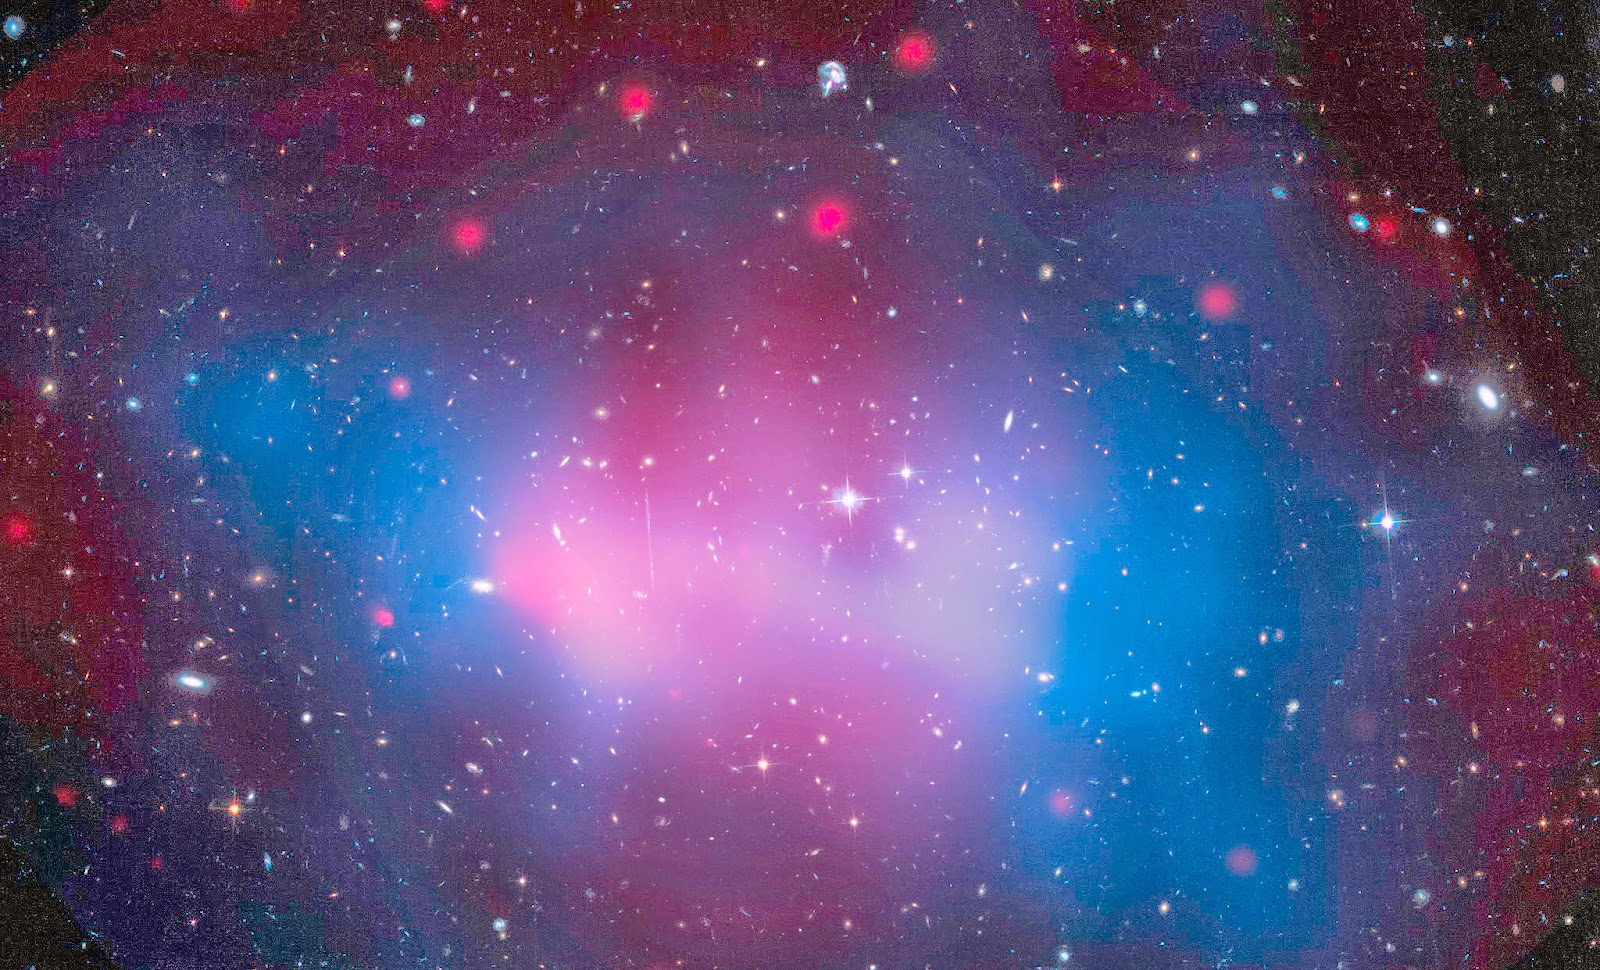 Ministry Of Space Exploration El Gordo Galactic Cluster